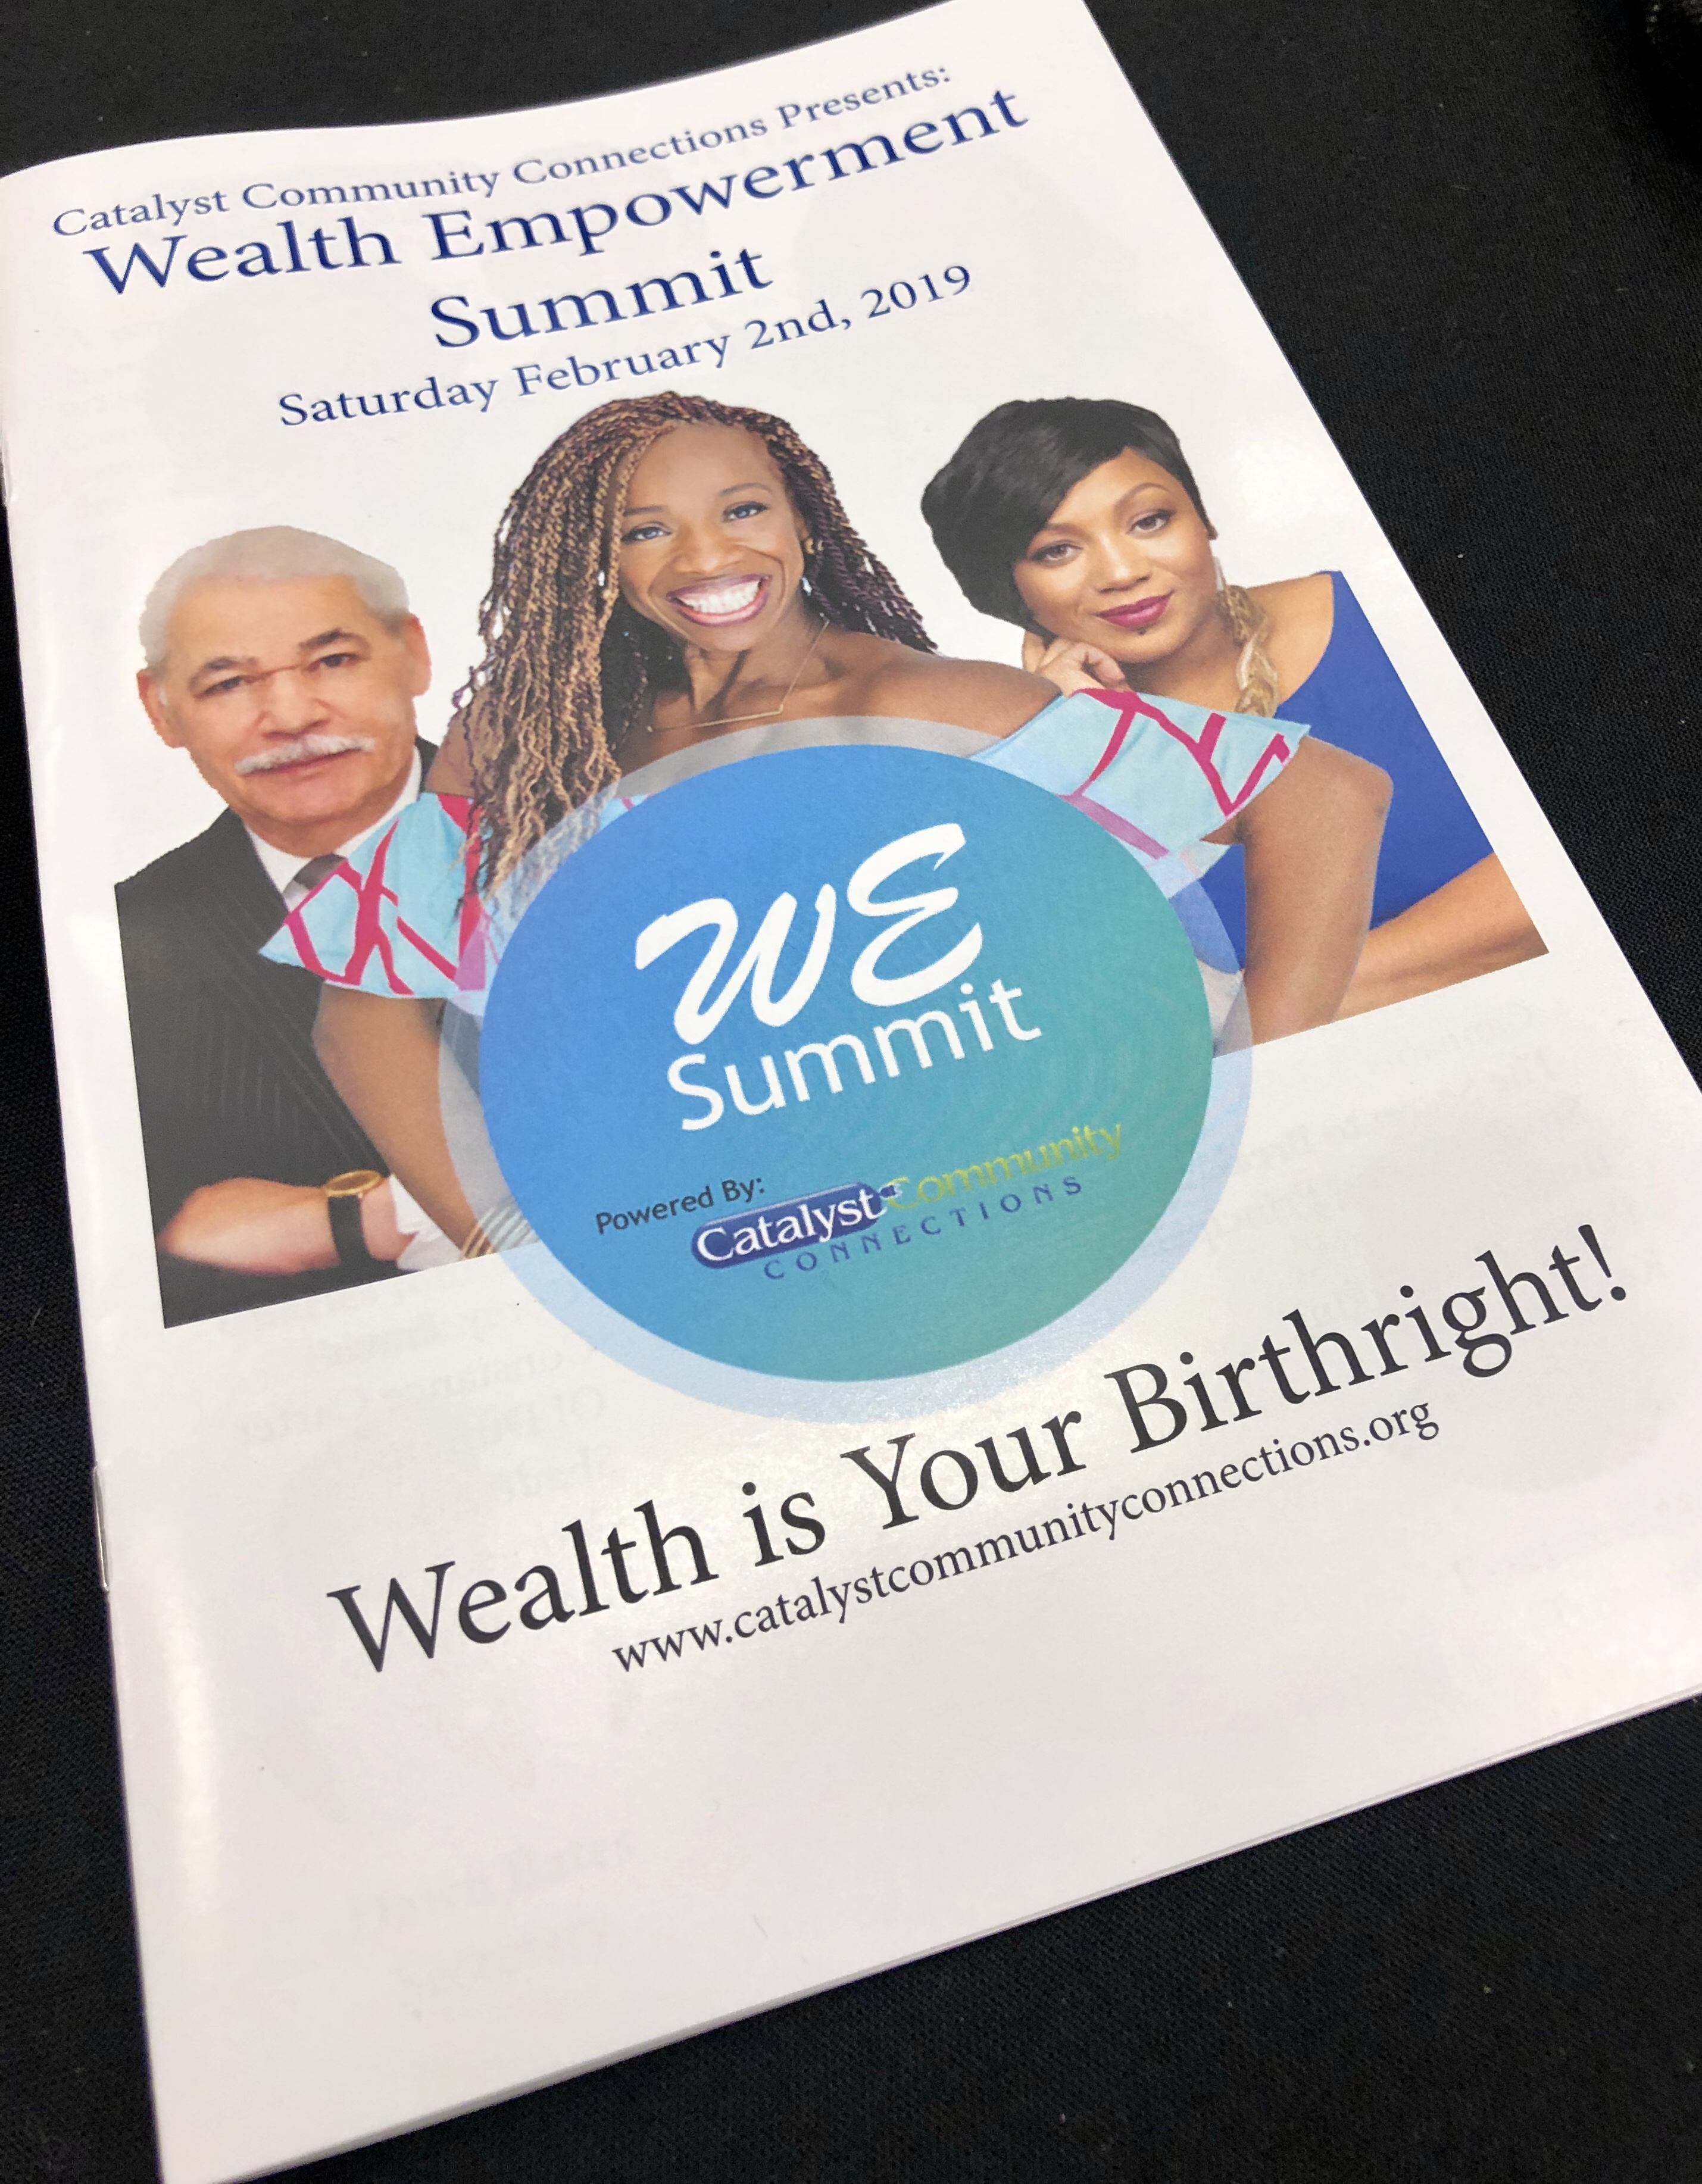 Pamphlet of the WE Summit